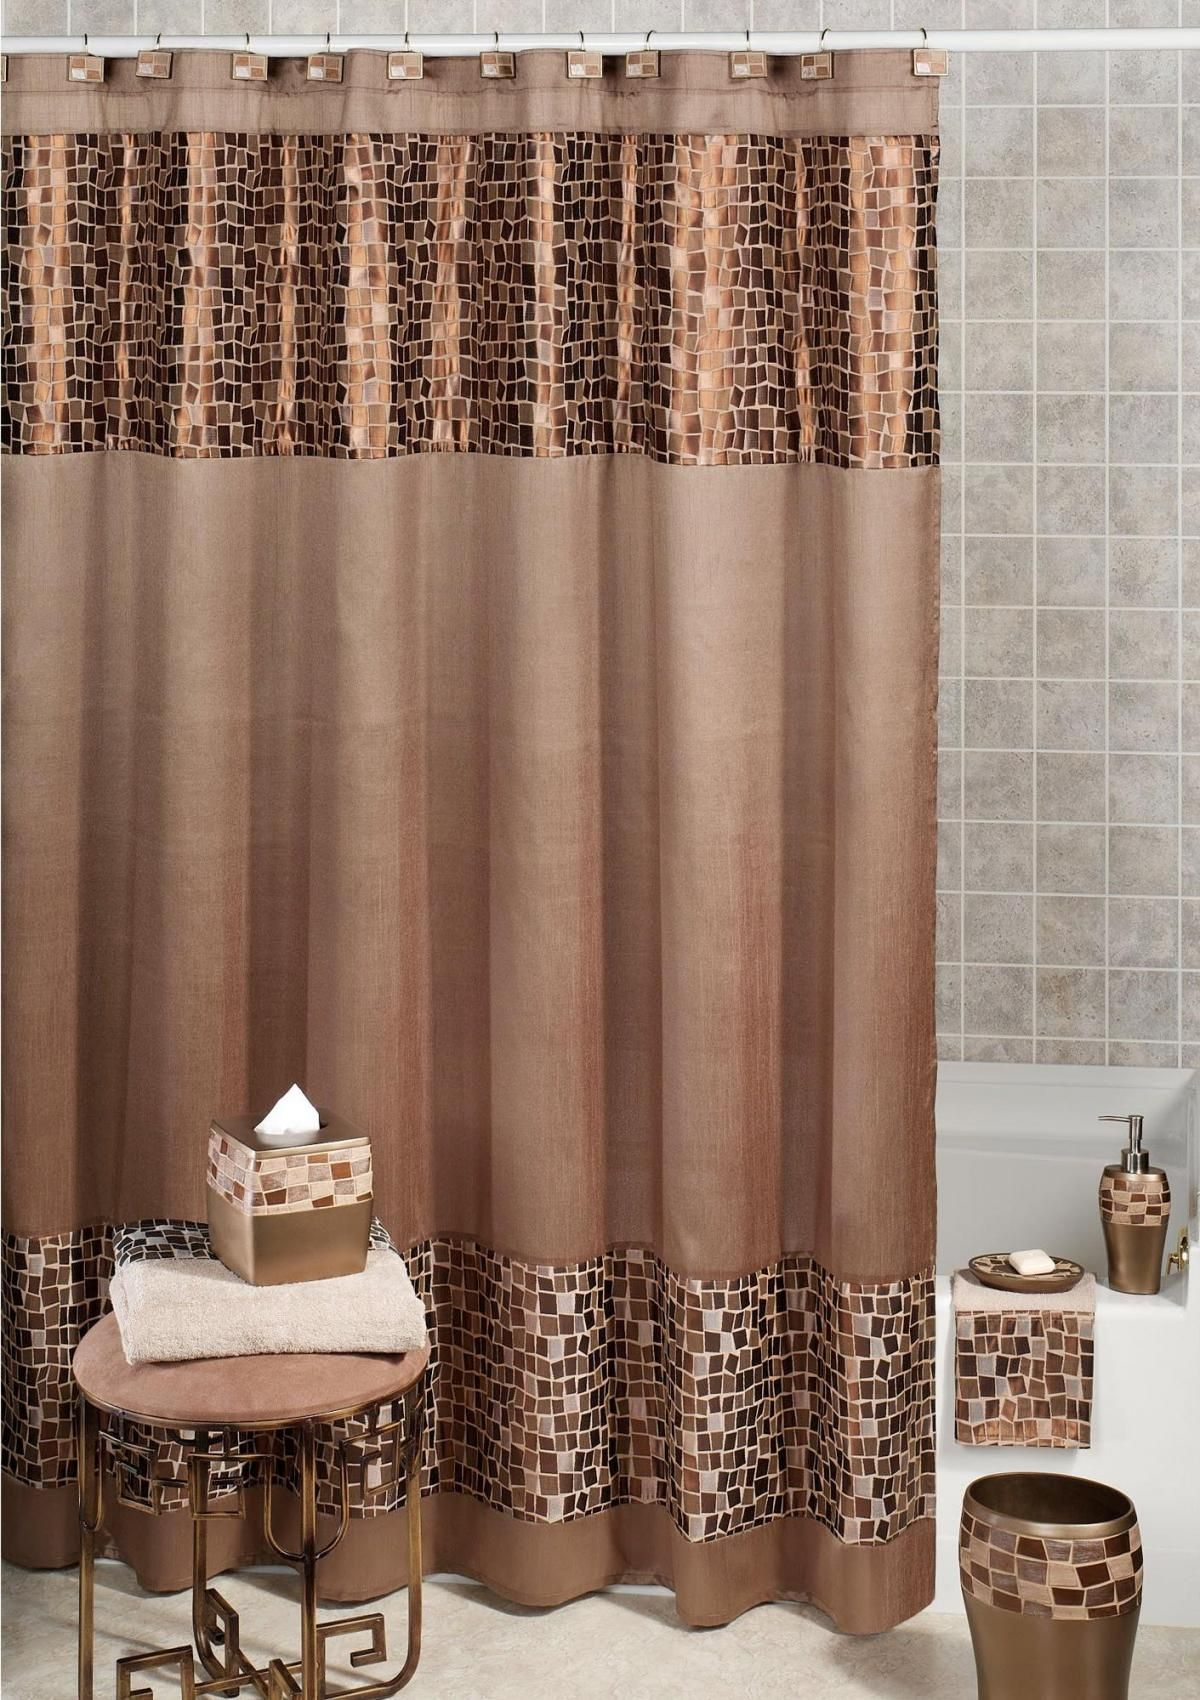 Remarkable Fabric Shower Curtains for Elegant Bathroom | drawhome ...